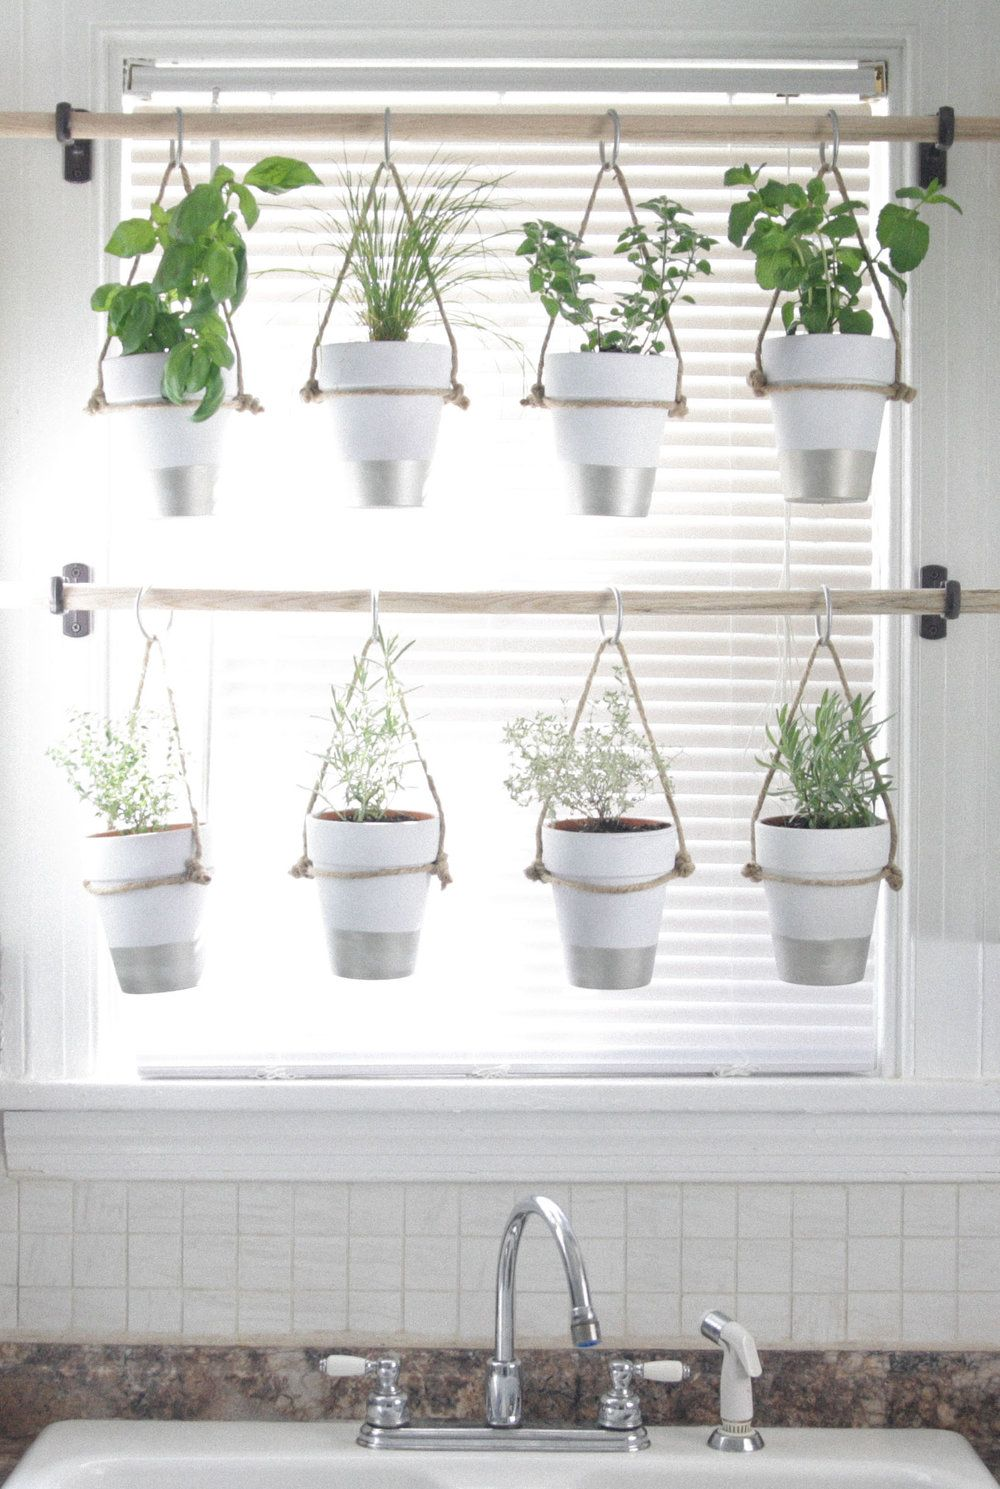 26 Creative Ways to Plant a Vertical Garden - How To Make a Vertical ...